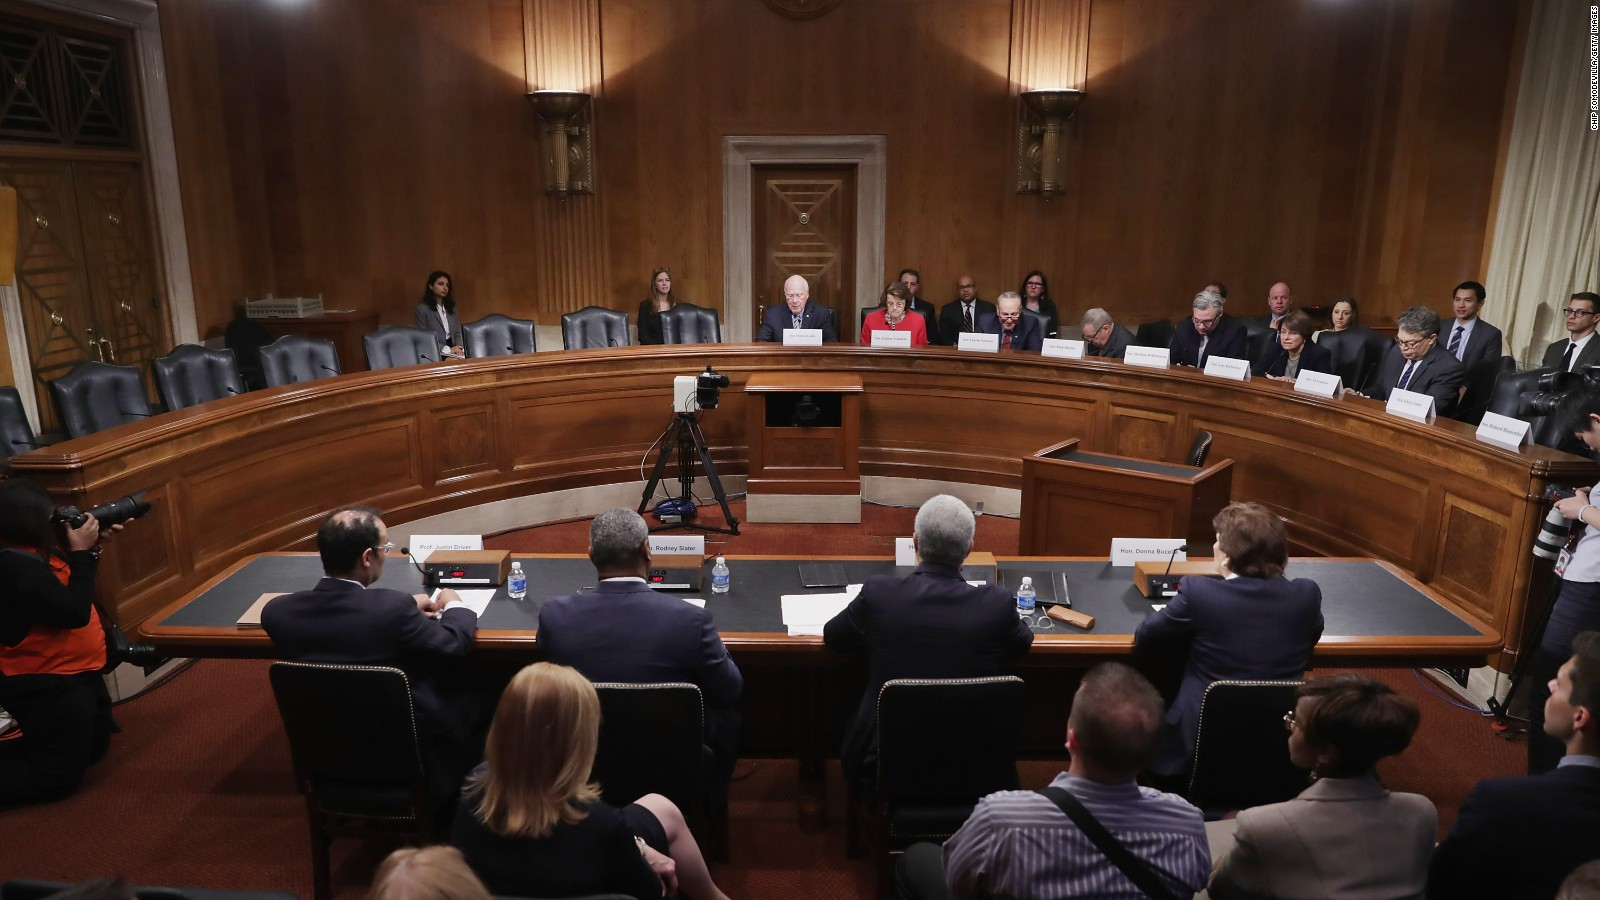 Image result for PHOTOS OF US SENATE JUDICIARY COMMITTEE AT WORK